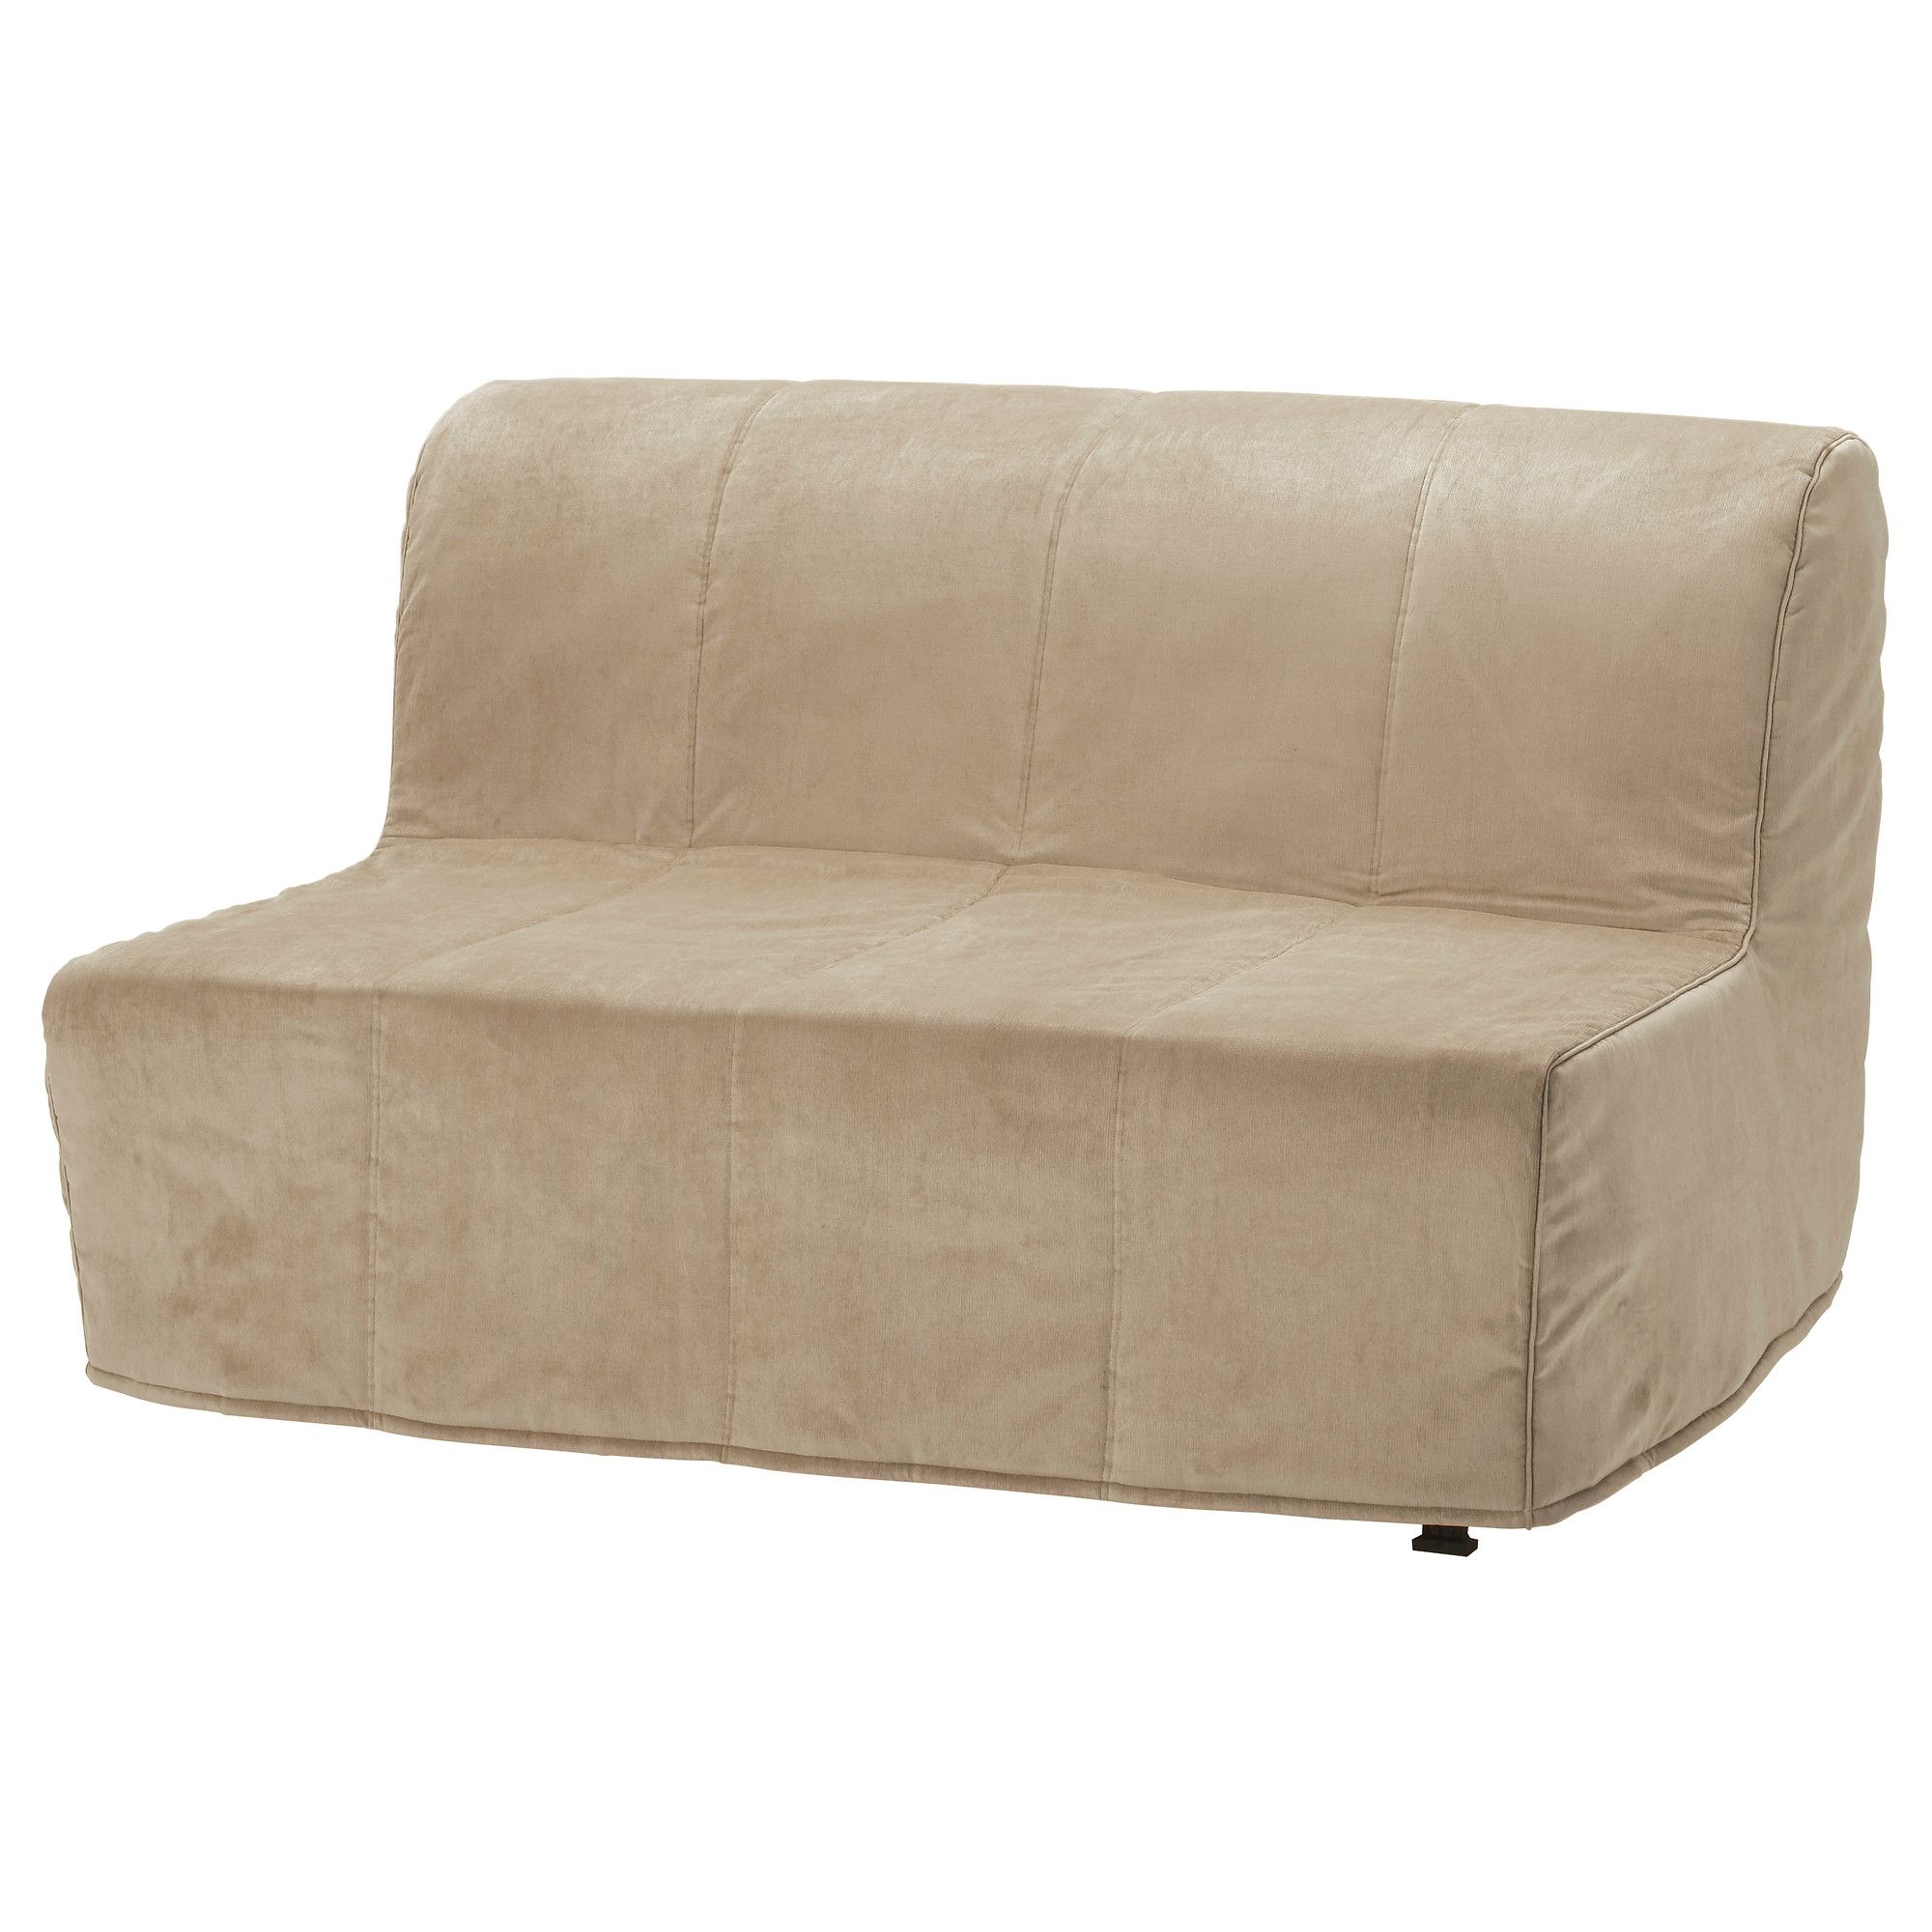 Furniture Home Furnishings Find Your Inspiration Ikea Sofa Bed White Leather Sofa Bed Leather Sofa Bed